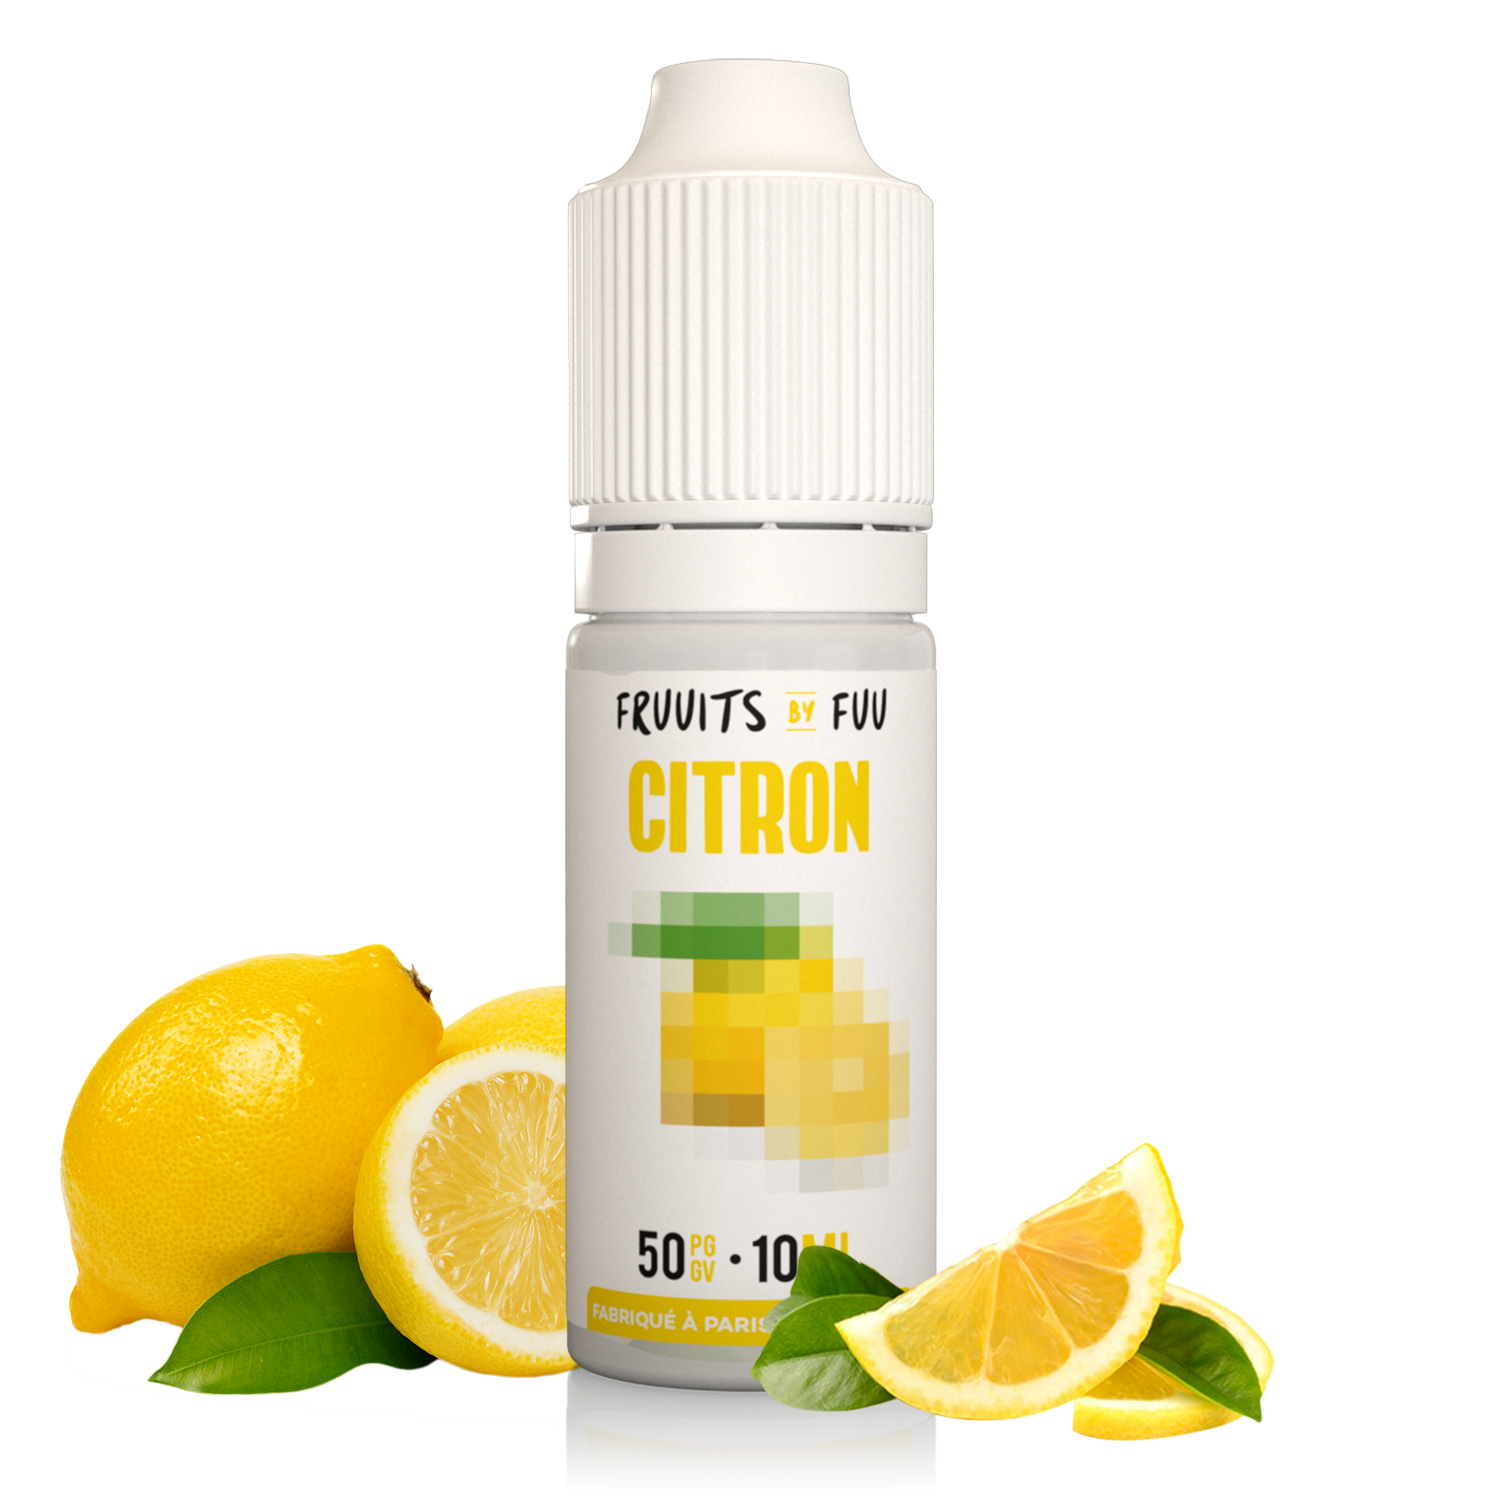 Citron| Fruuits by Fuu| Eliquide 10ml